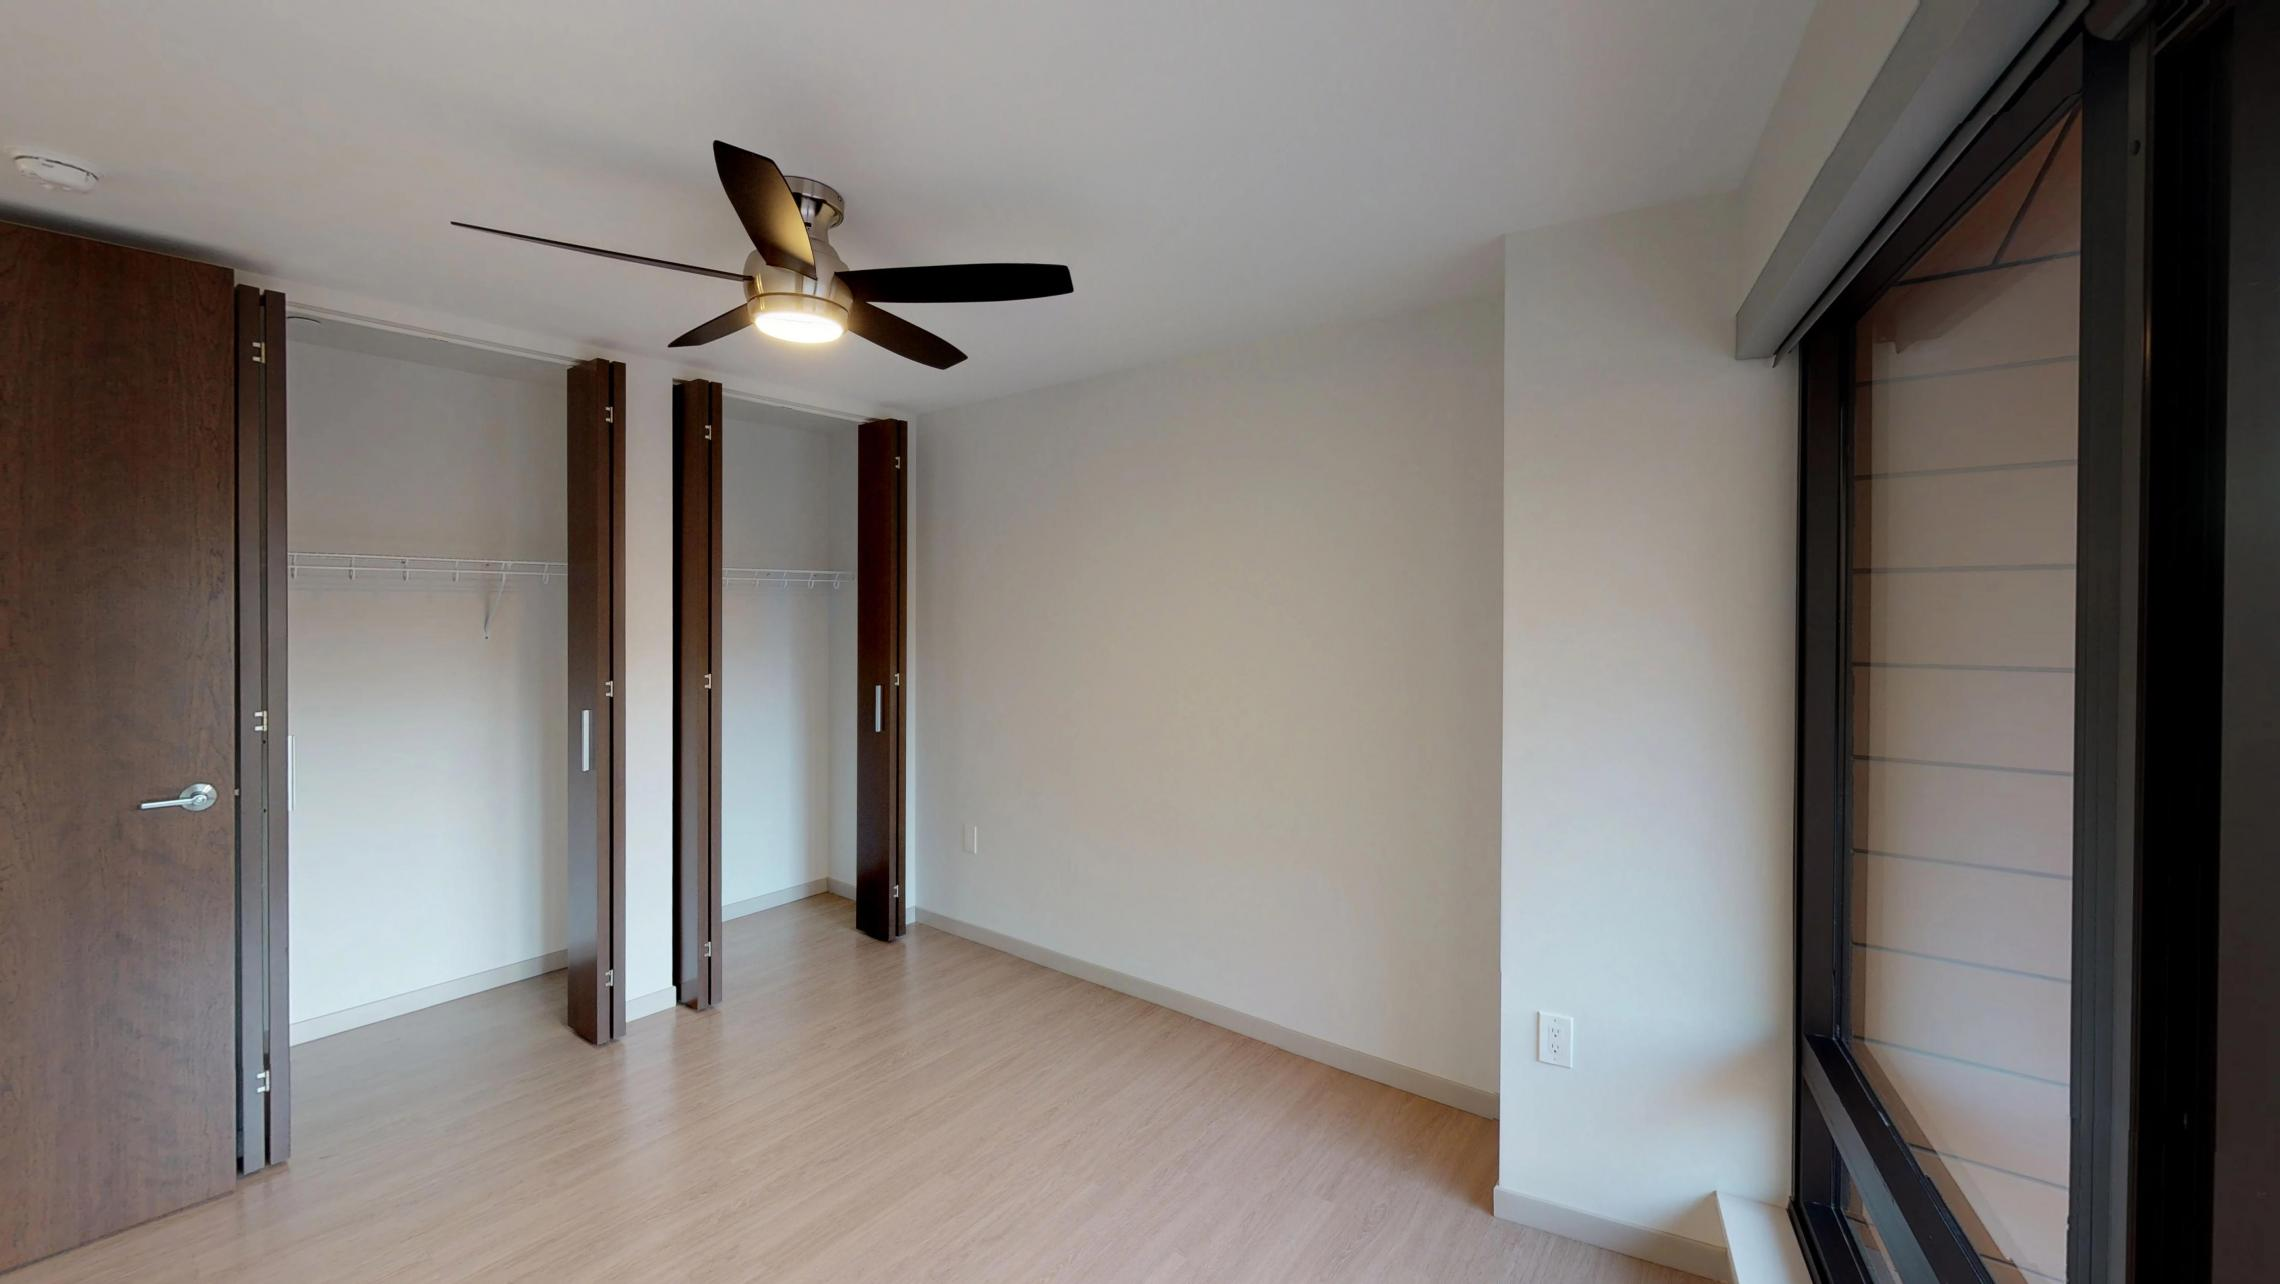 Pressman-Apartment-217-One-Bedroom-Luxury-Downtown-Upscale-Modern-Downtown-Madison-Capitol-Square-Bedroom